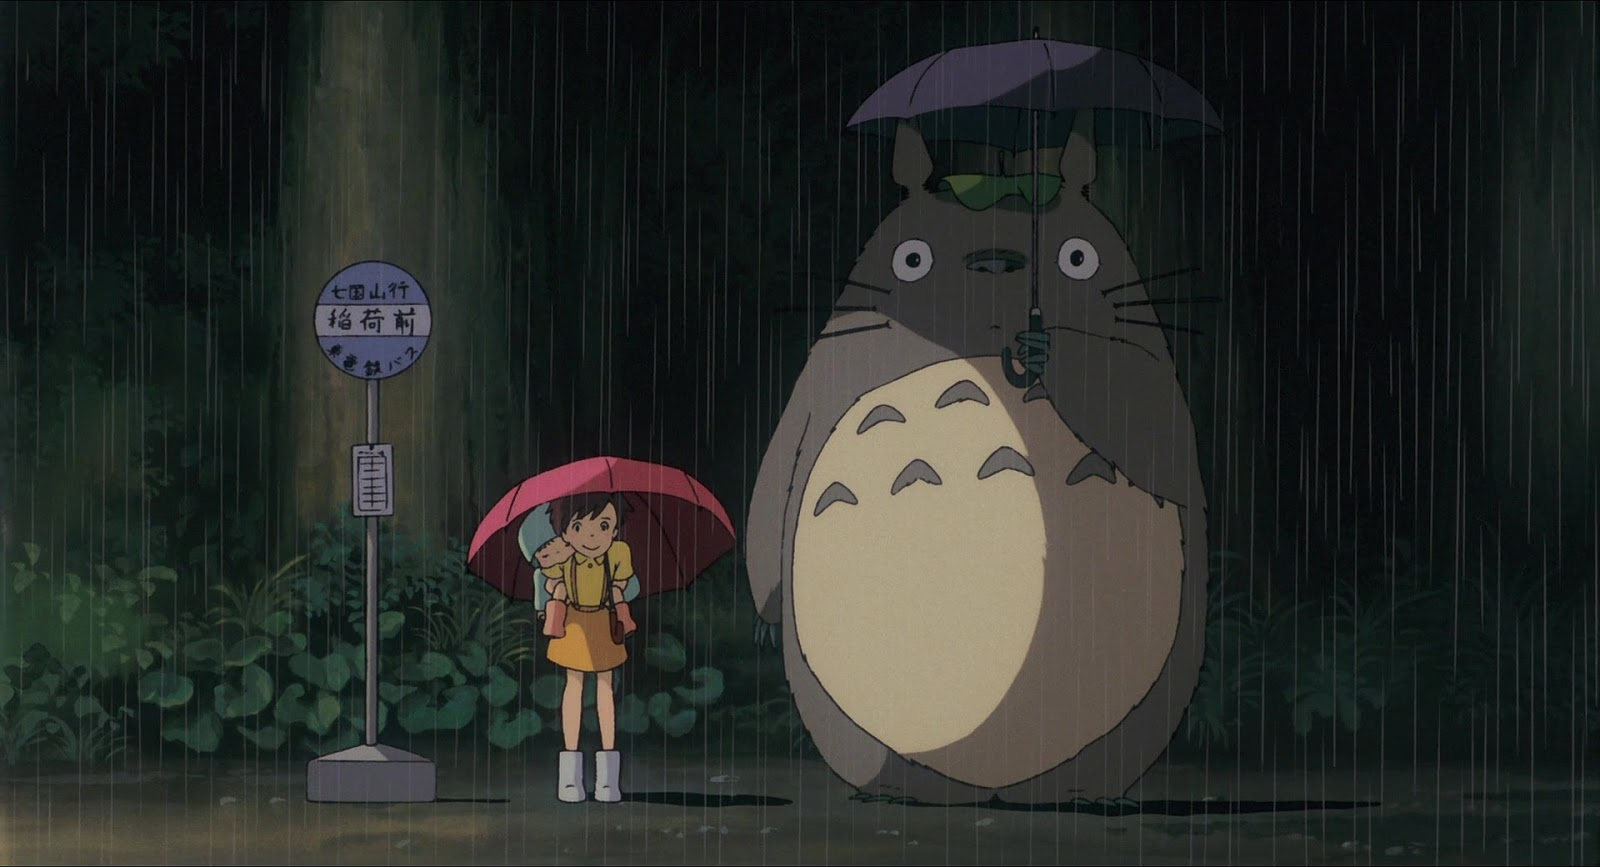 Studio Ghibli movies are coming to Netflix